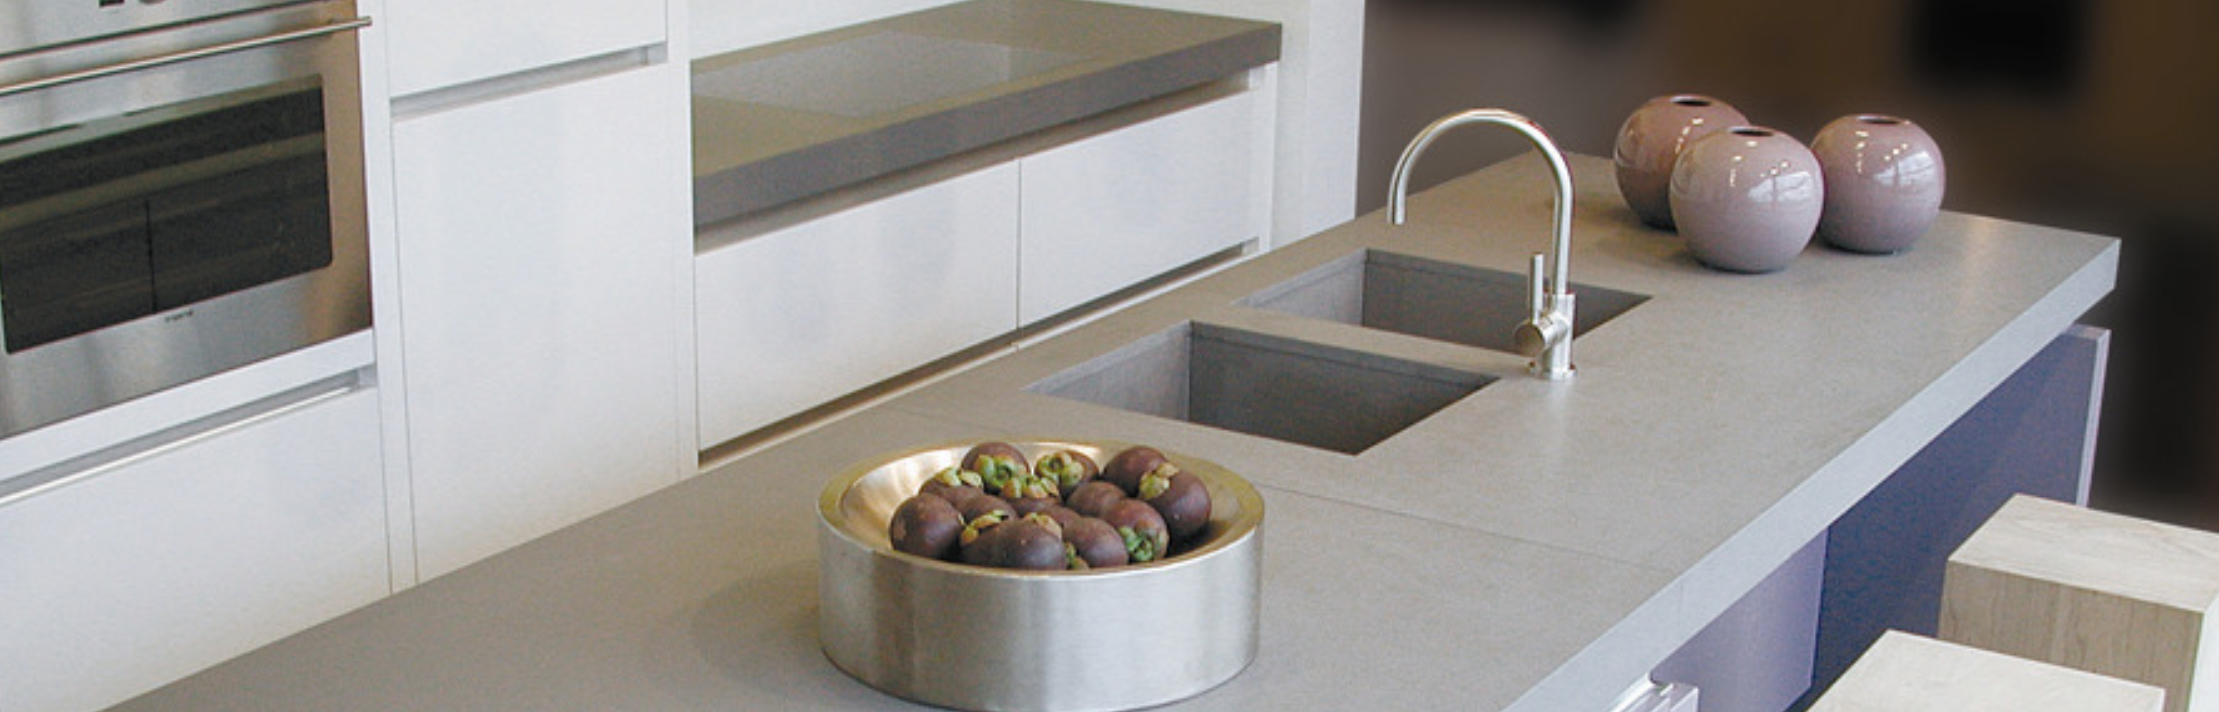 CAESARSTONE | CONCRETE | KITCHEN